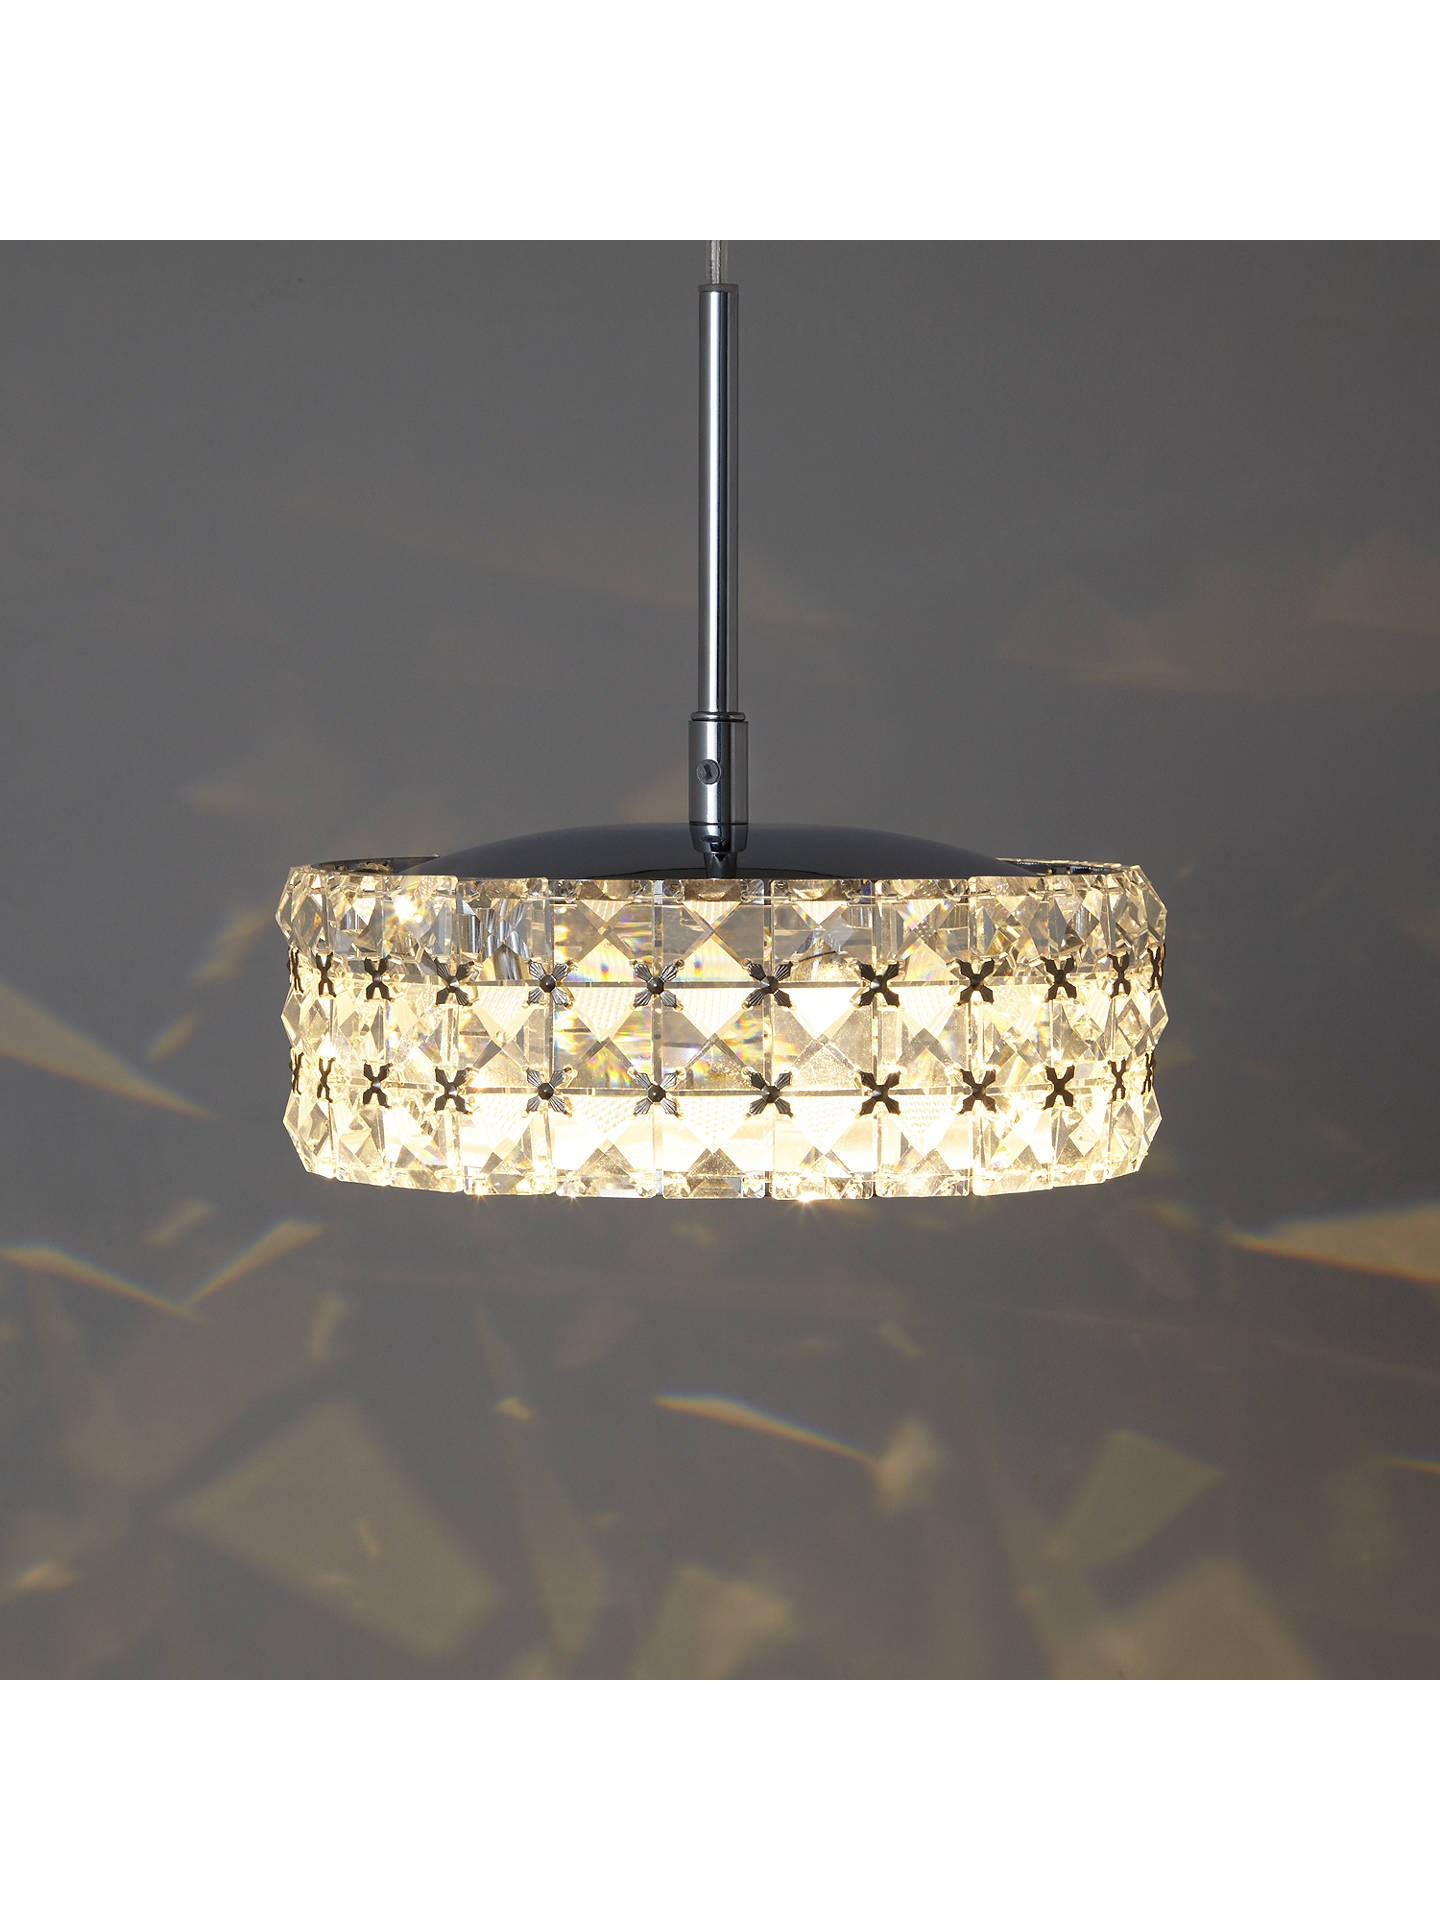 Small Fancy Crystal Chandelier with Silver Rectangular